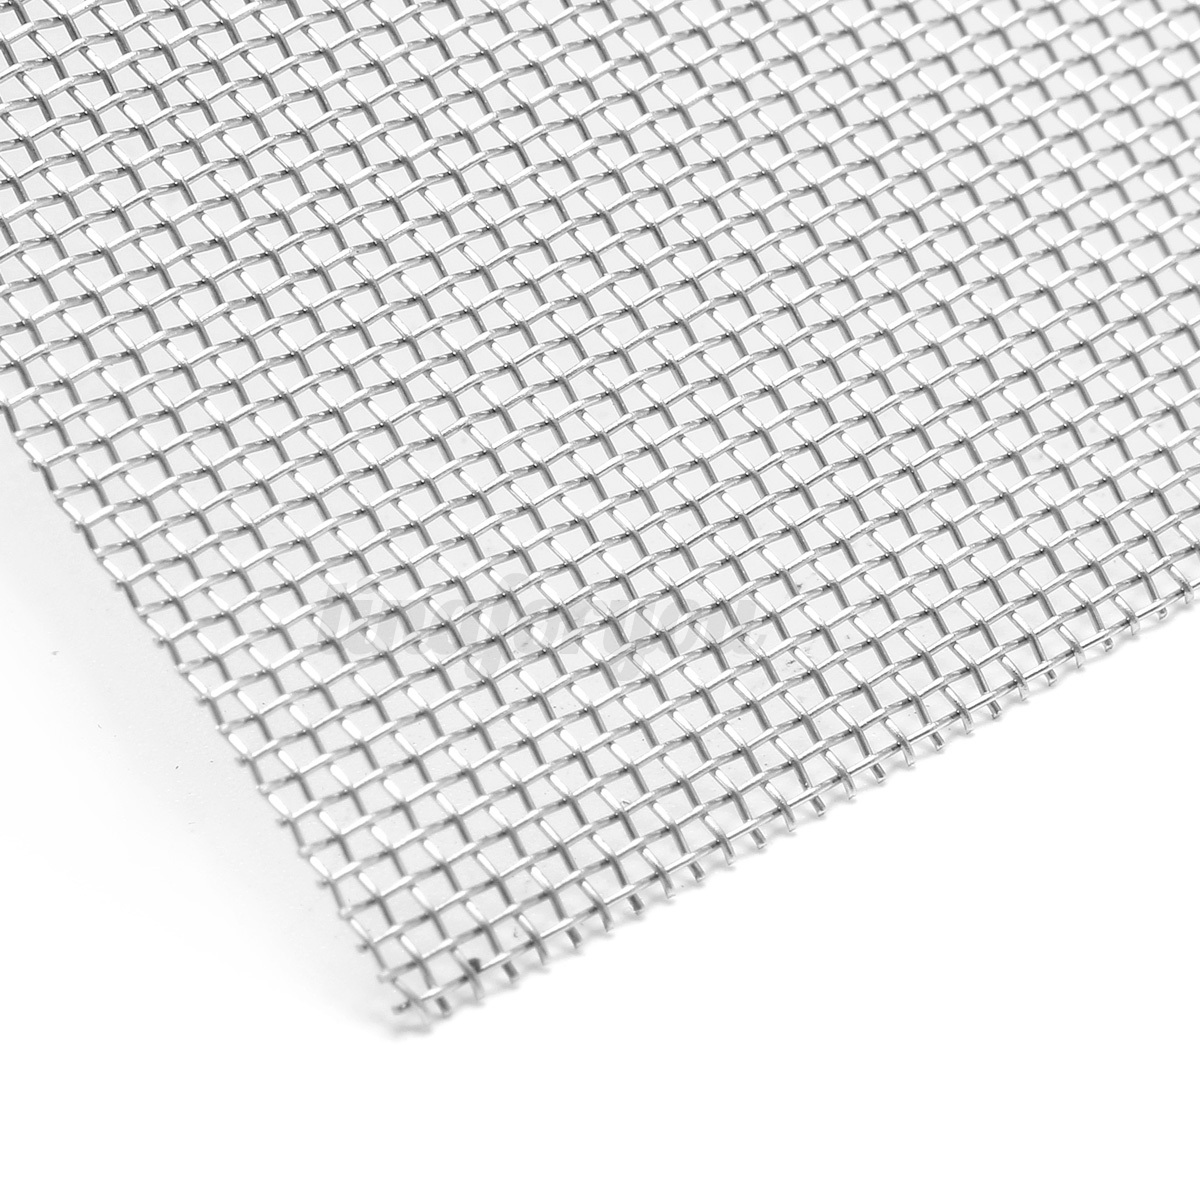 4x4 Micron Stainless Steel Filter 30 Mesh Wire Cloth